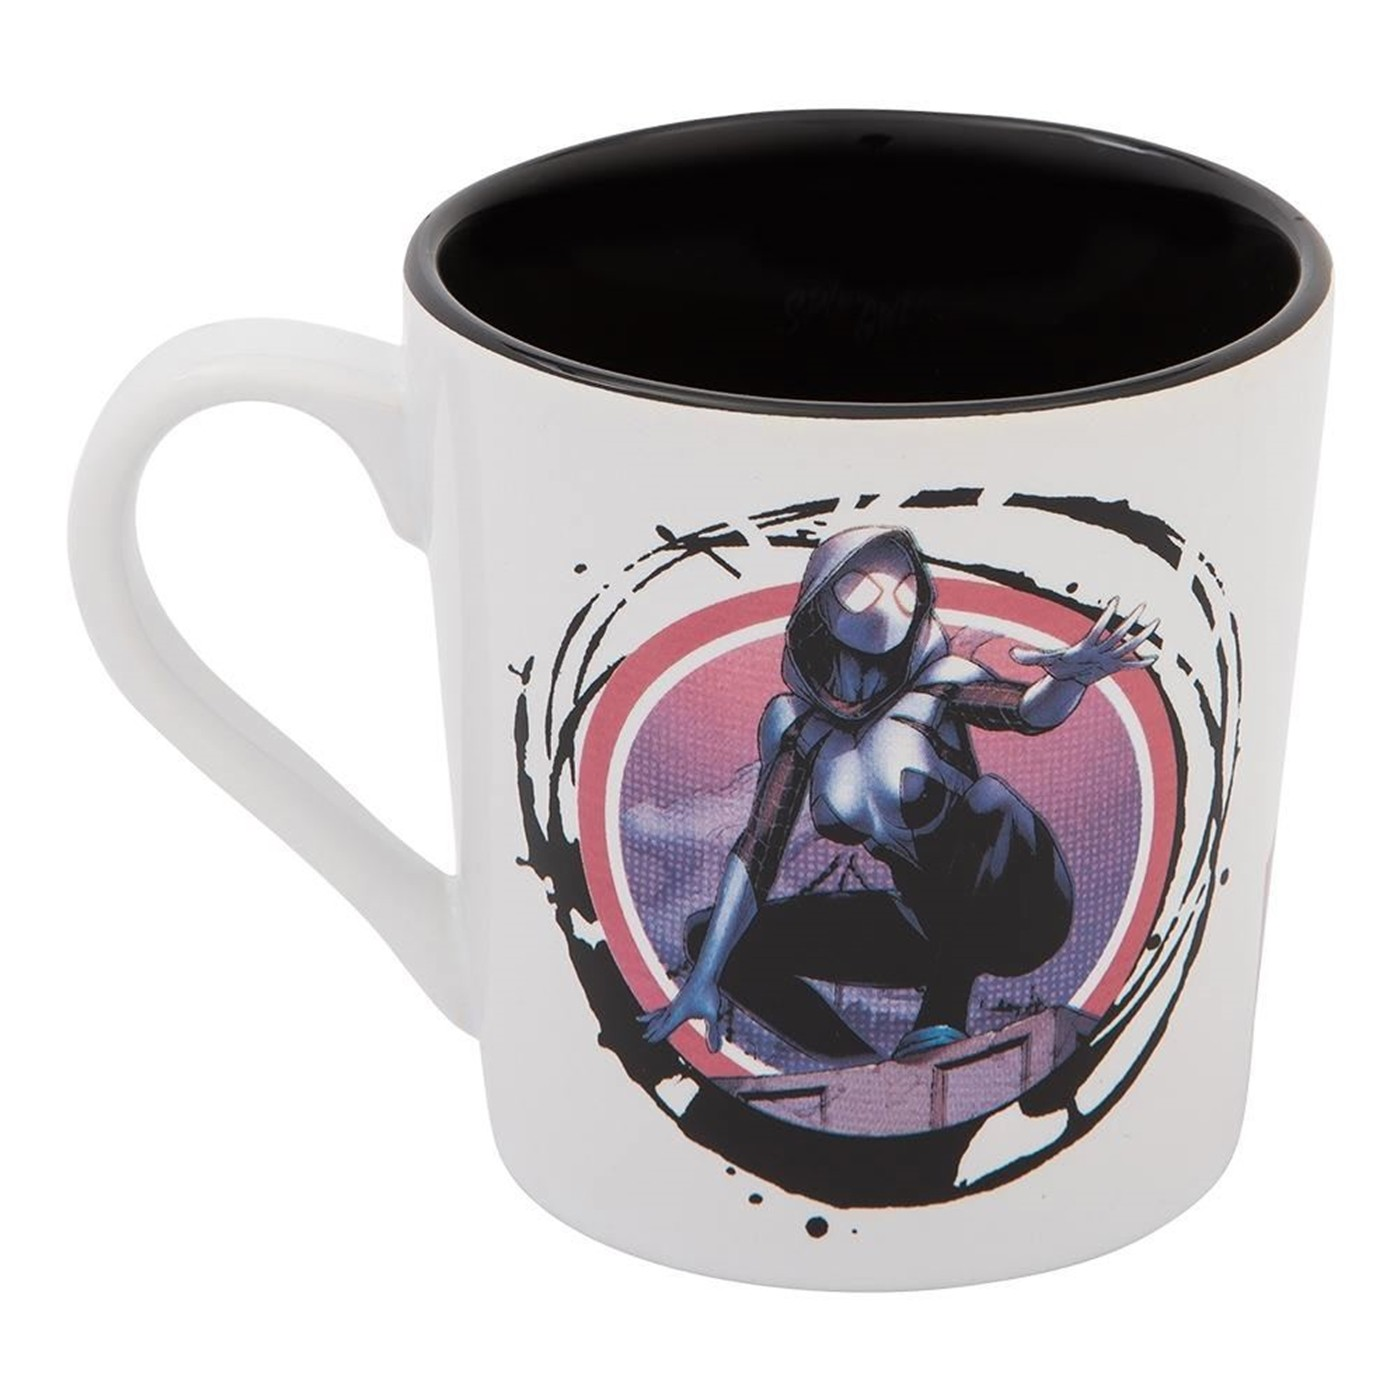 Marvel Spider-Gwen 12 oz. Ceramic Mug